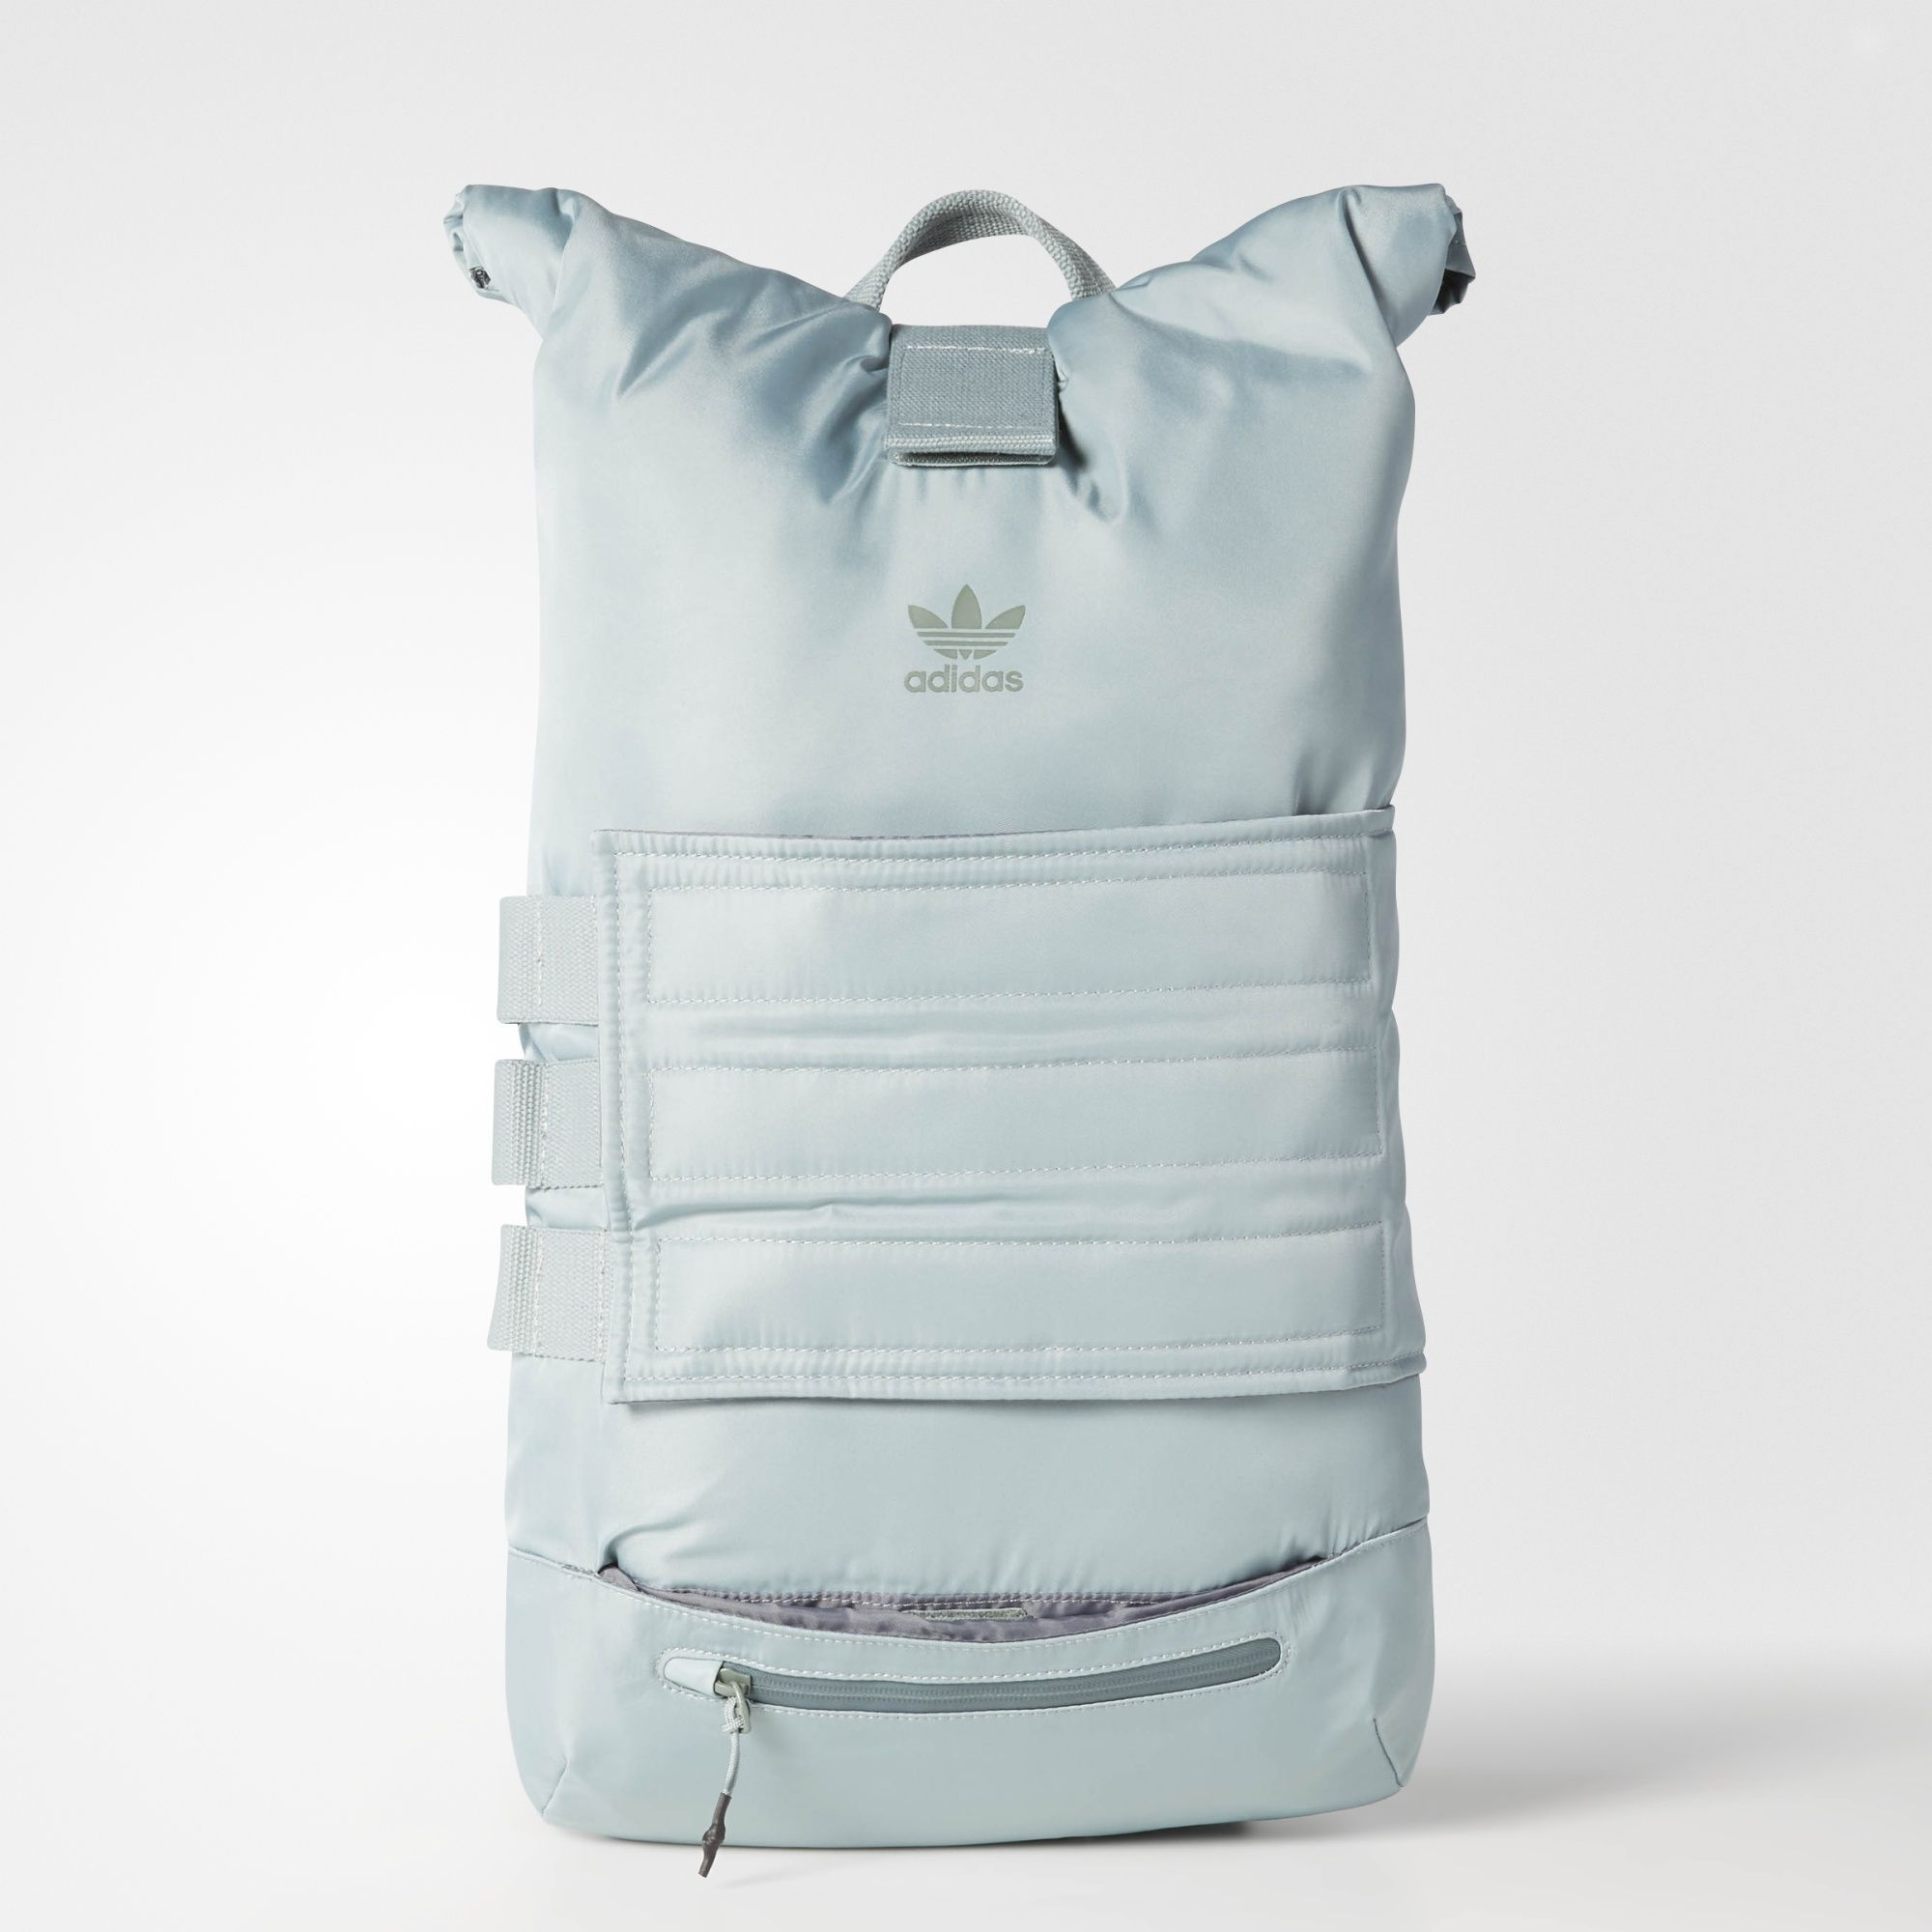 302a9f2e44 adidas - Pastel Camo Roll-up Backpack